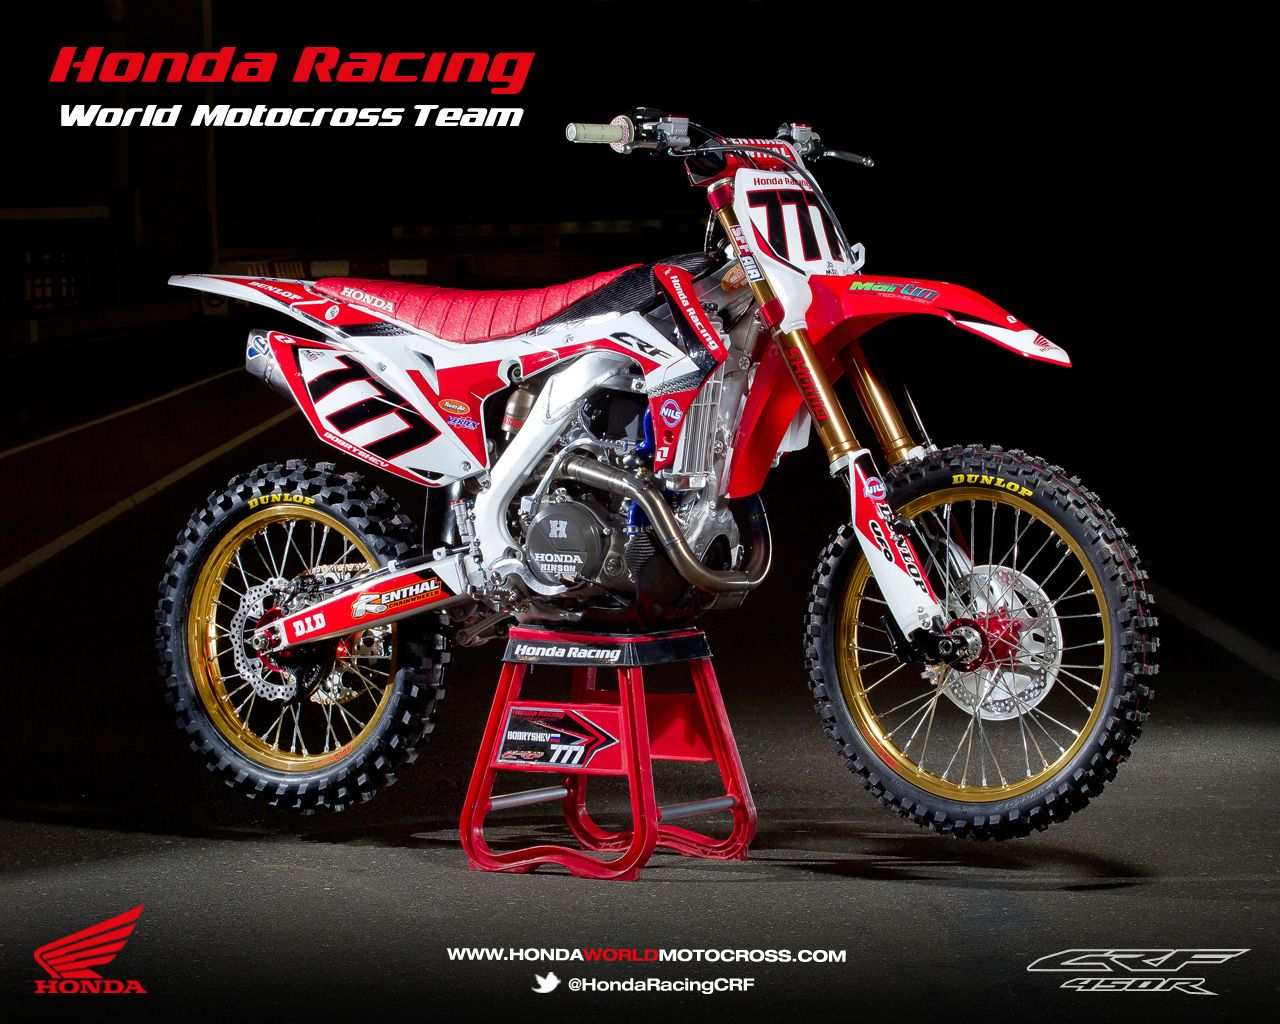 Honda Crf 450r World Motocross Team 2013 Dirtbikes Pinterest